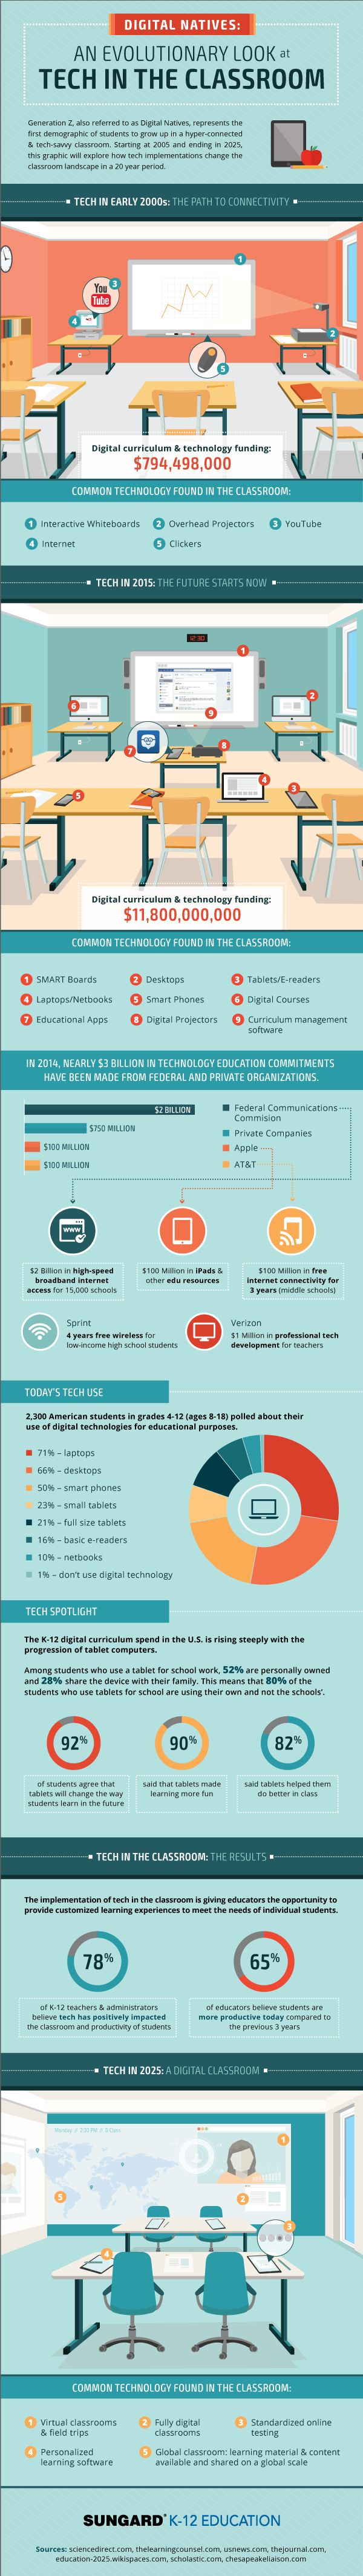 This Cool Infographic Maps the Evolution of Classroom Tech Through 2025 #ded318